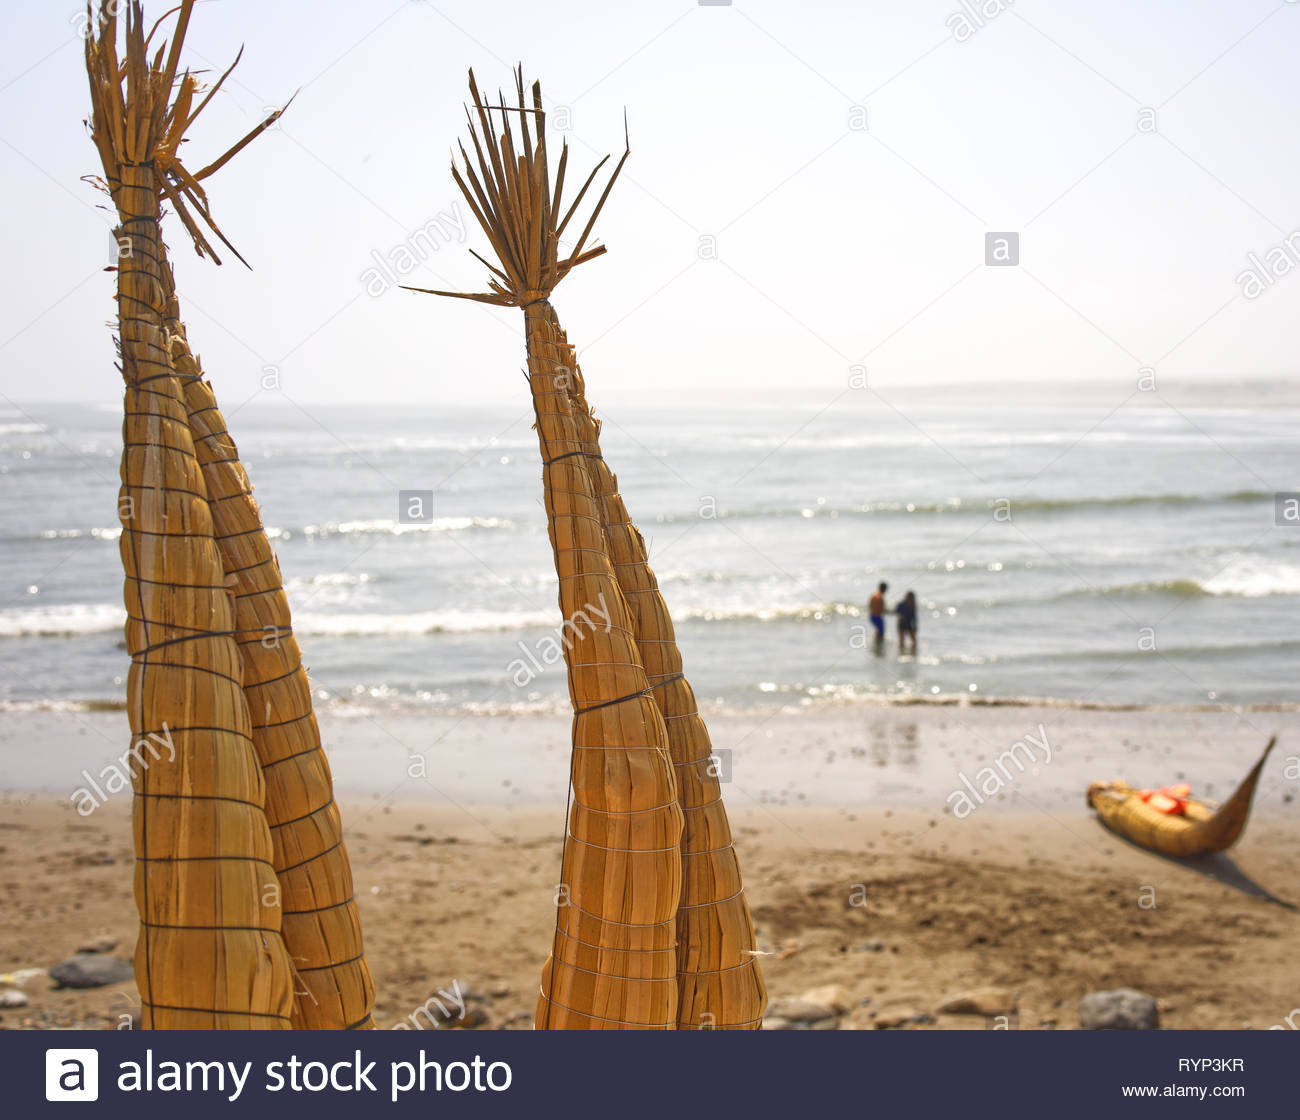 Reed boat Caballito de Totora on the beach in Huanchaco Trujillo Peru with a couple in the background - Stock Image